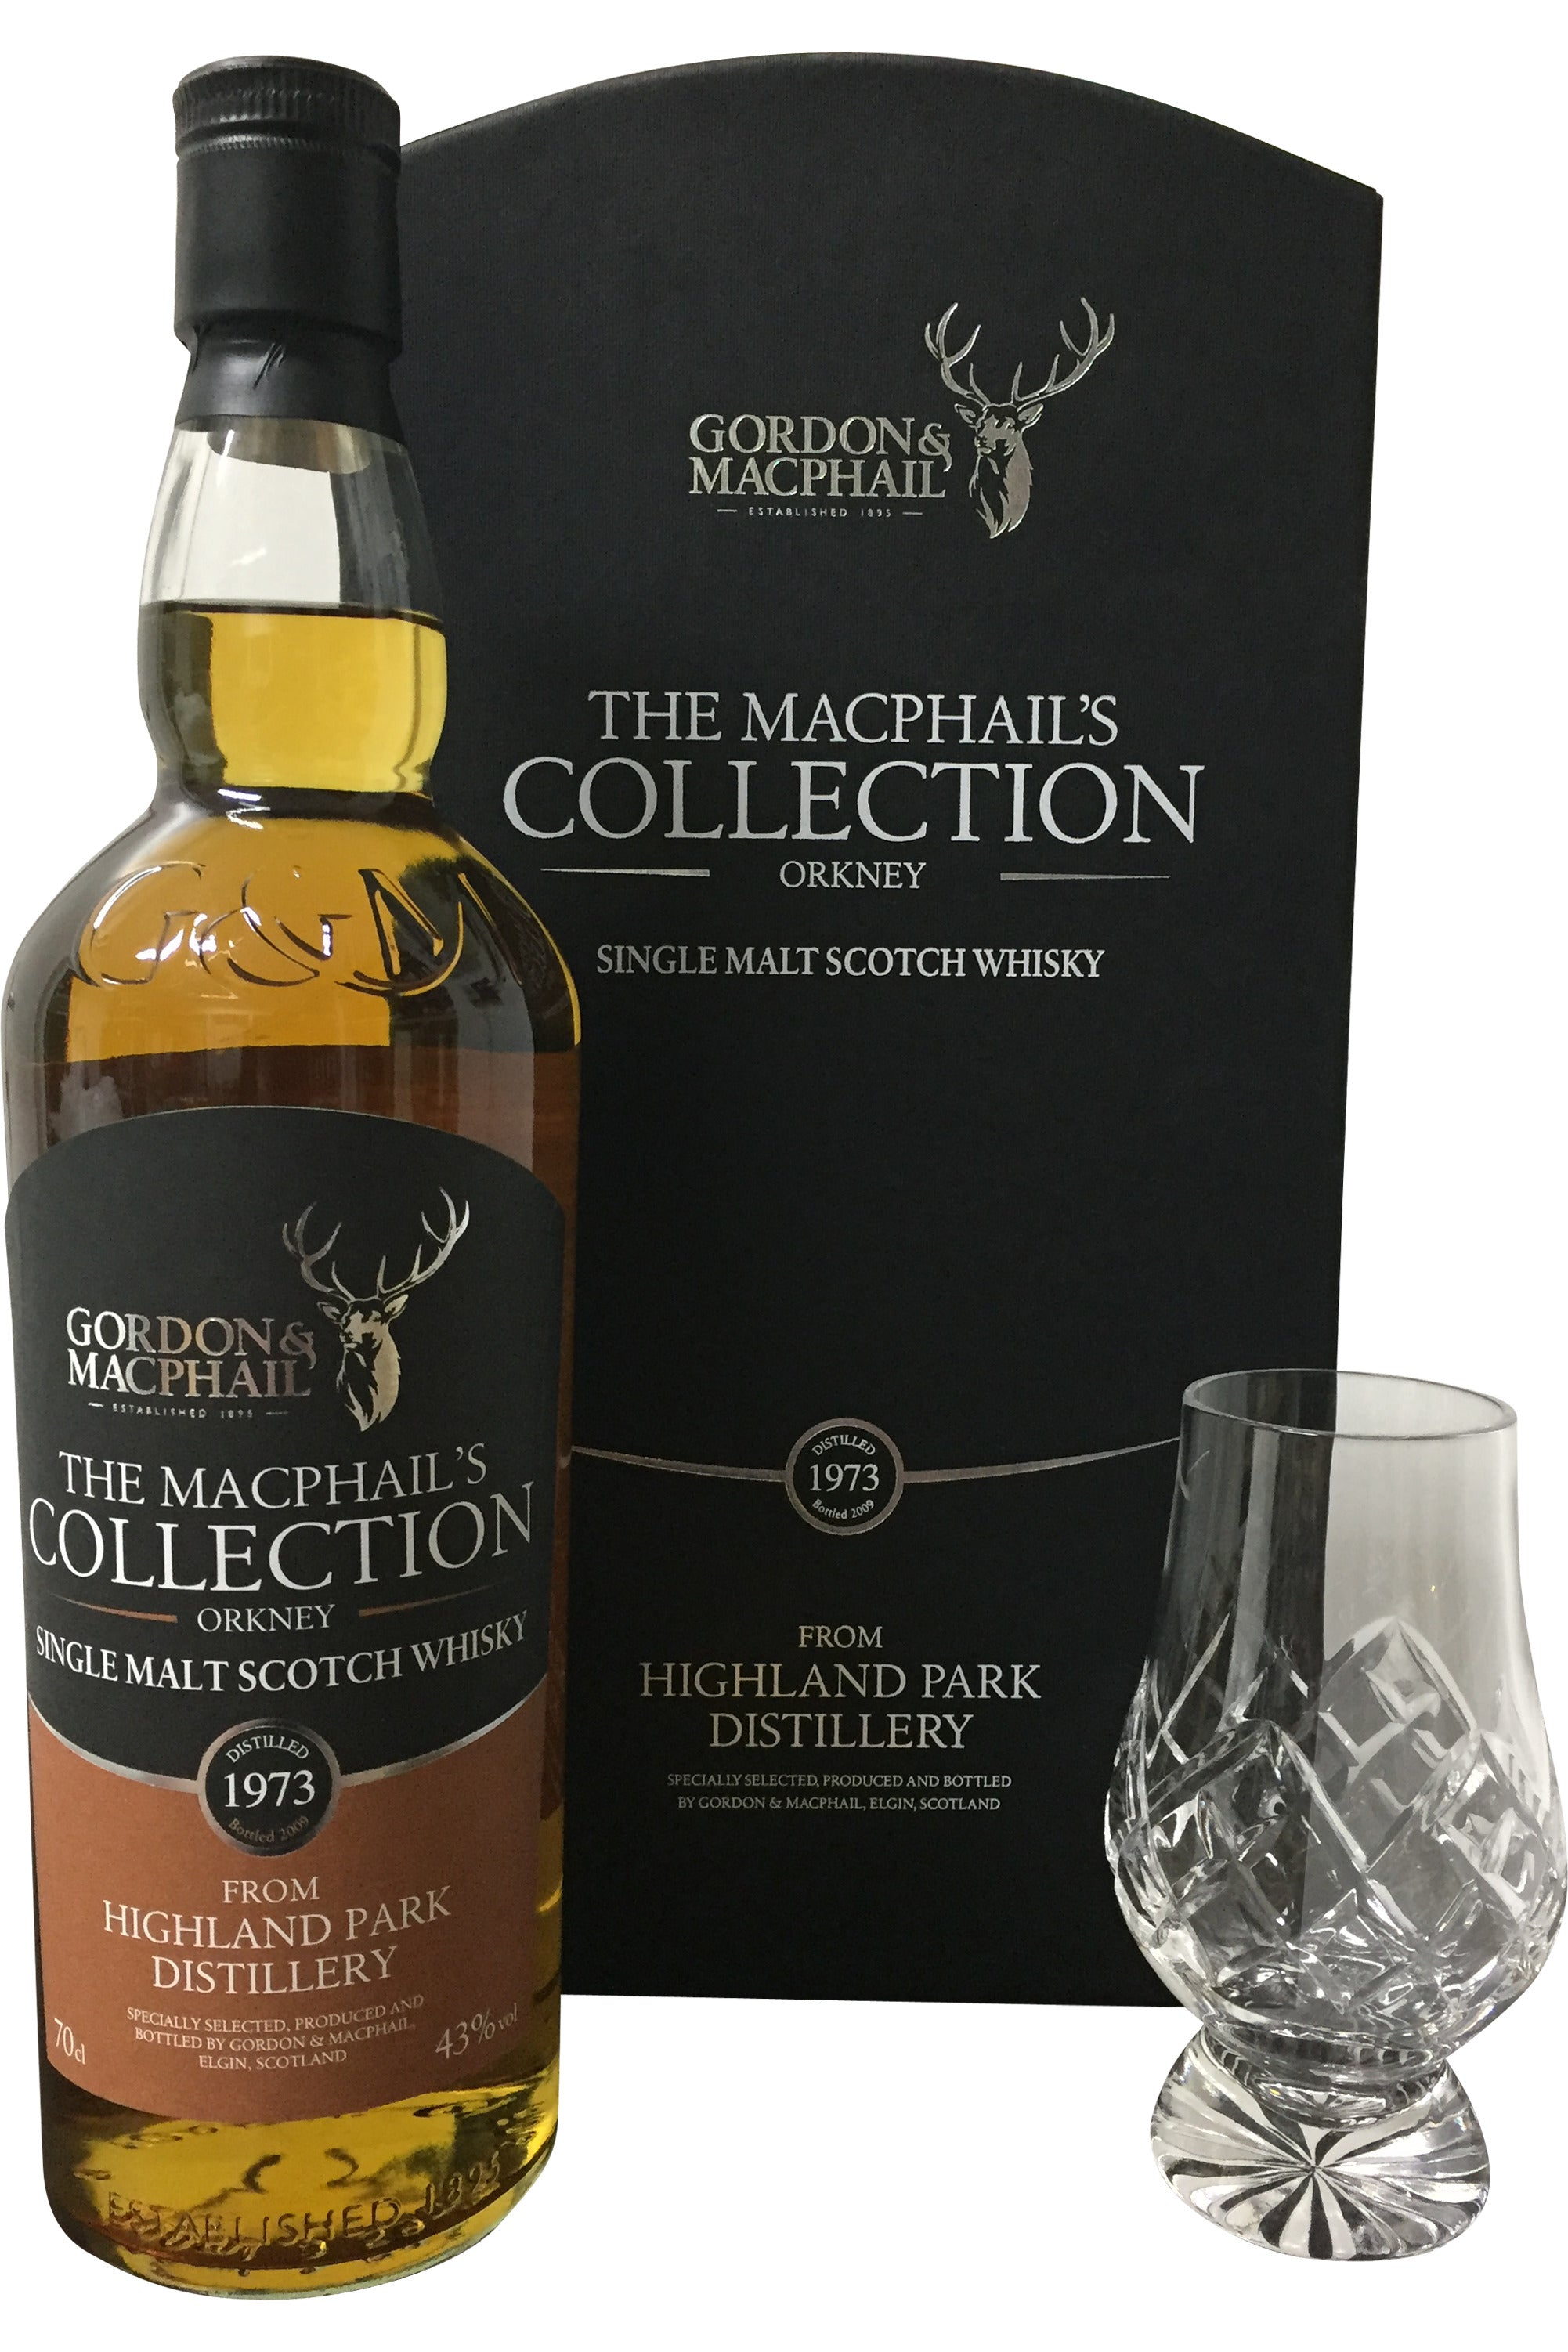 The Macphails Collection From Highland Park Distillery 1973 - 43% 700ml